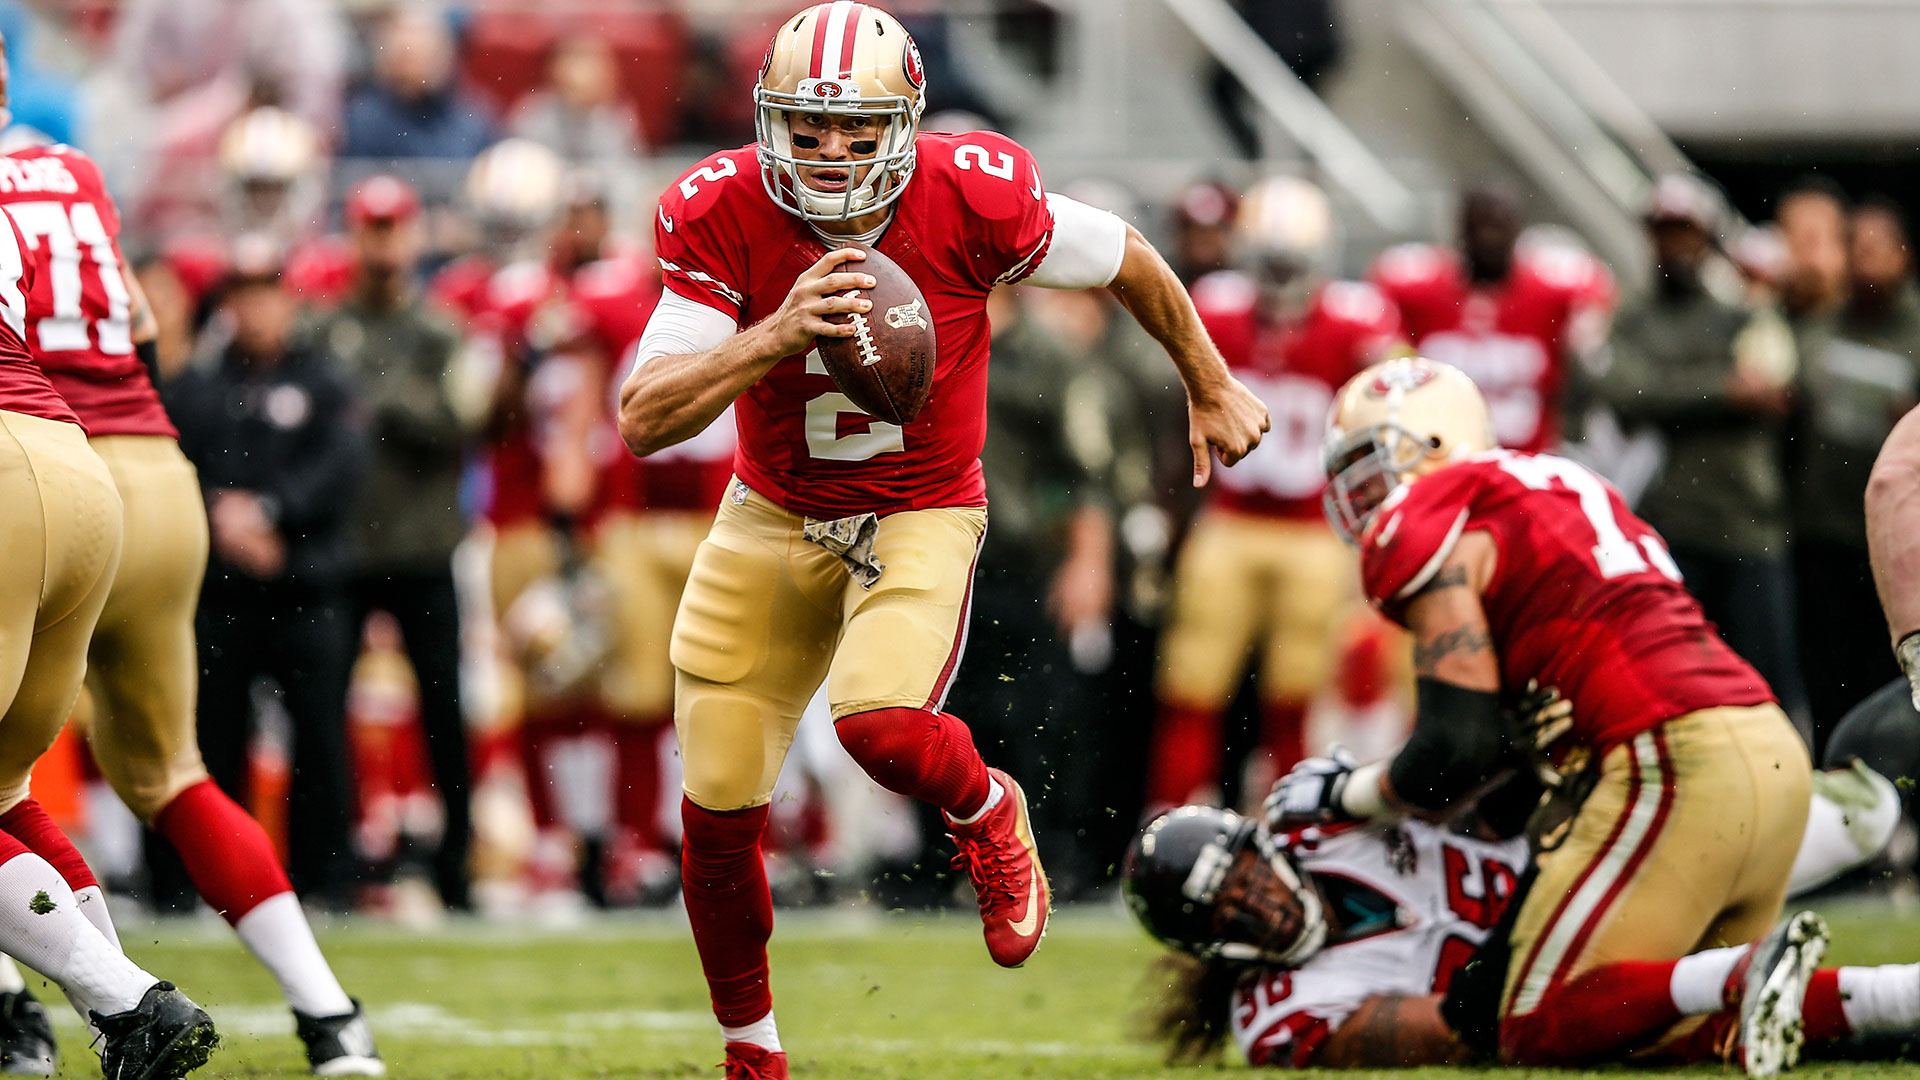 NFL Week 11 lines, angles and trends - Bettors fade backup QBs